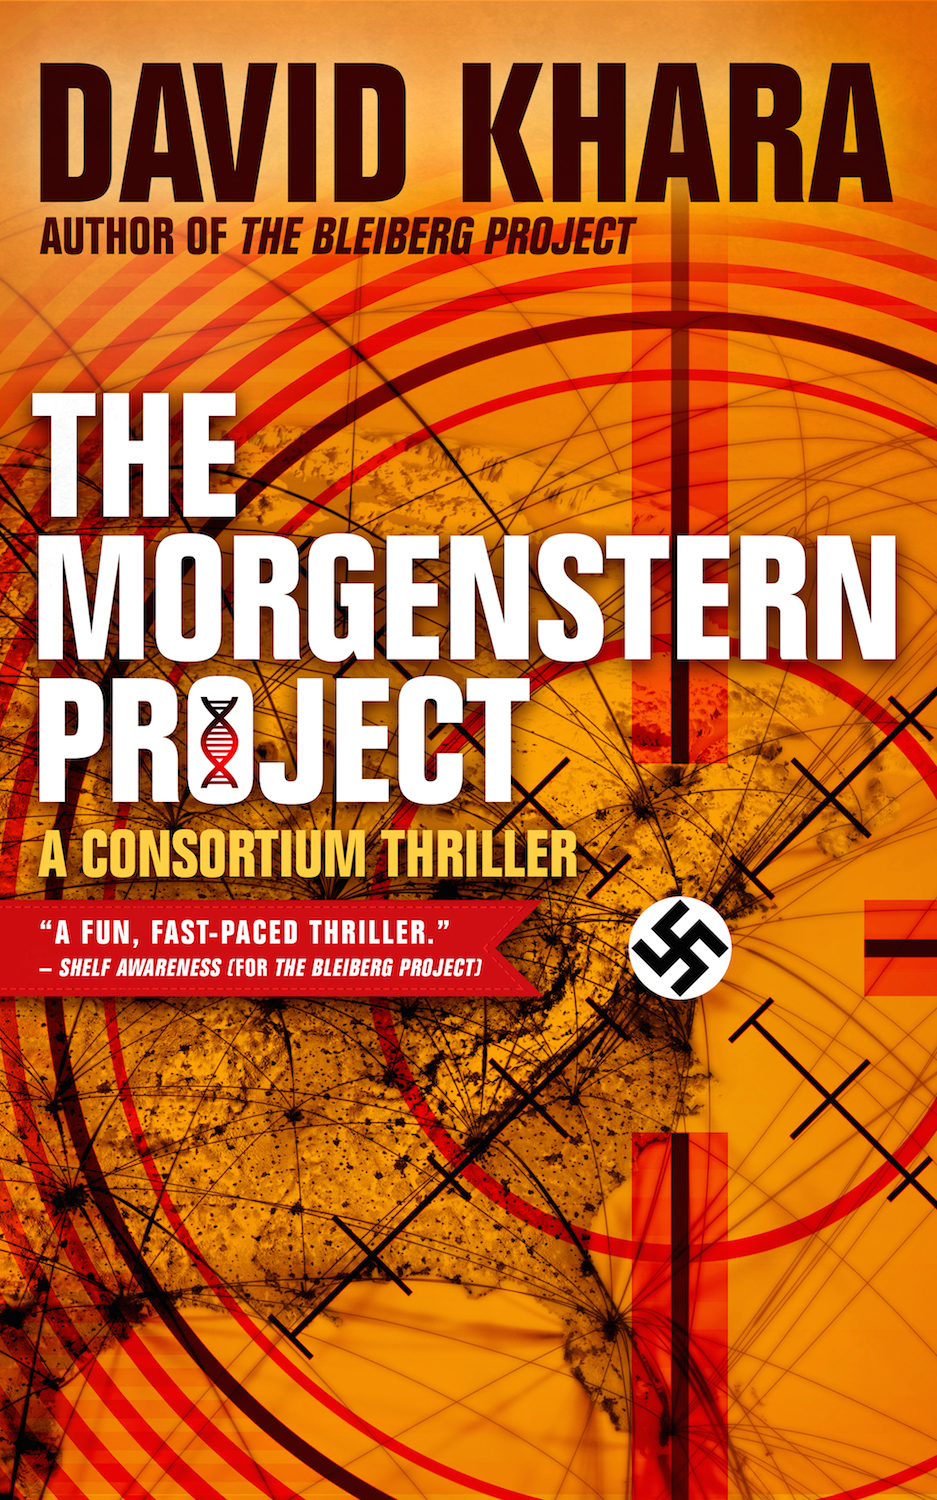 The_Morgenstern_Project.jpg